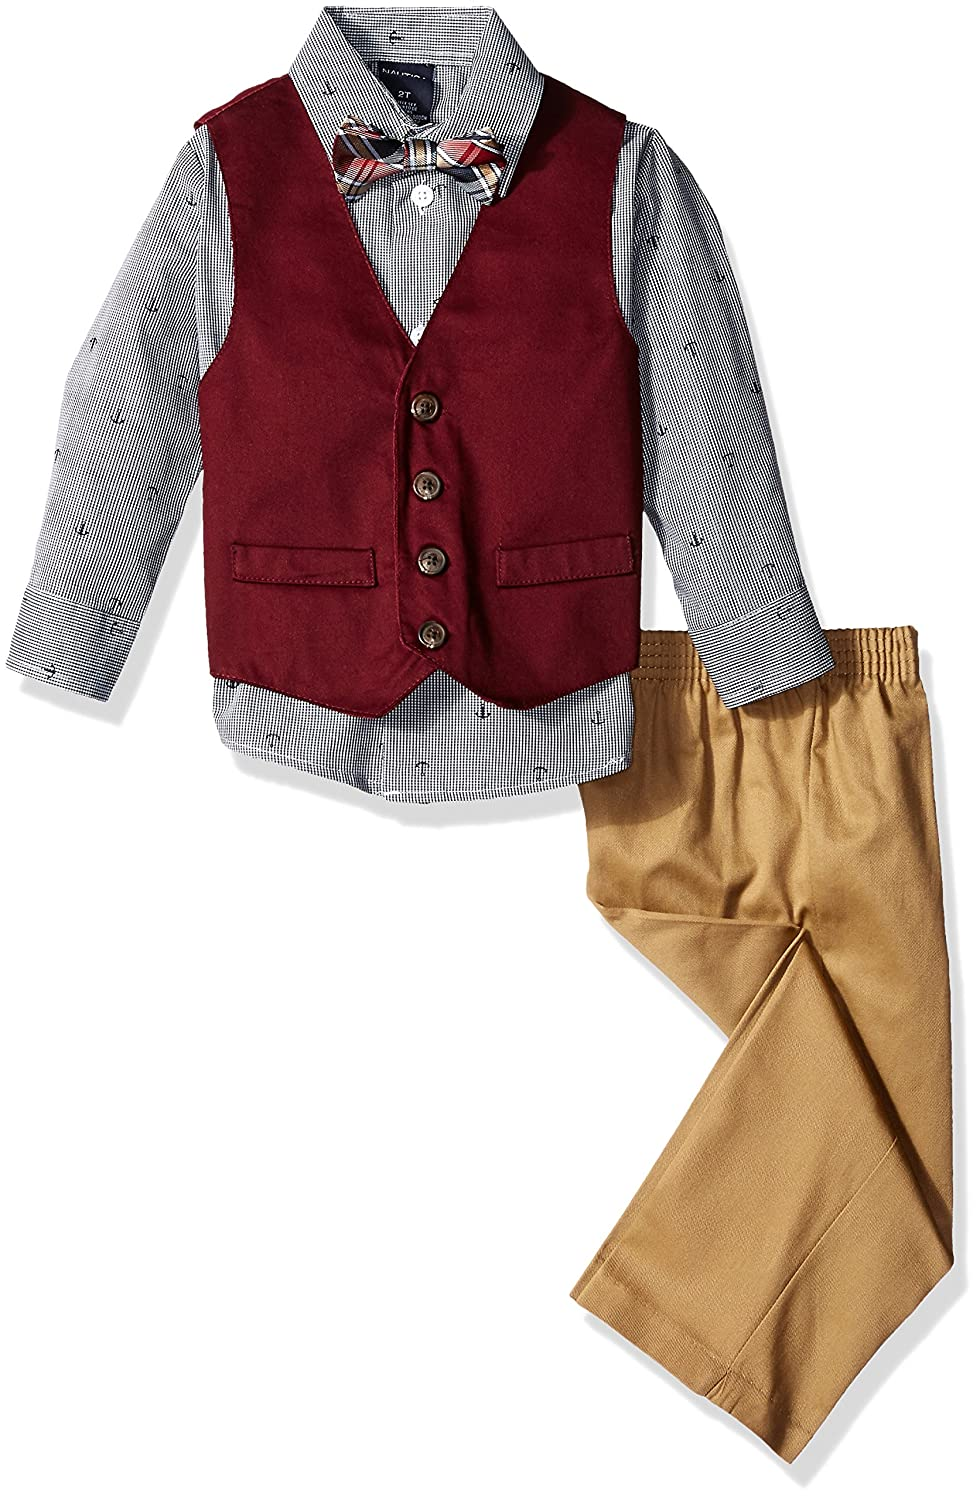 Nautica Boys' Vest Set with Pant, Shirt, and Bow Tie